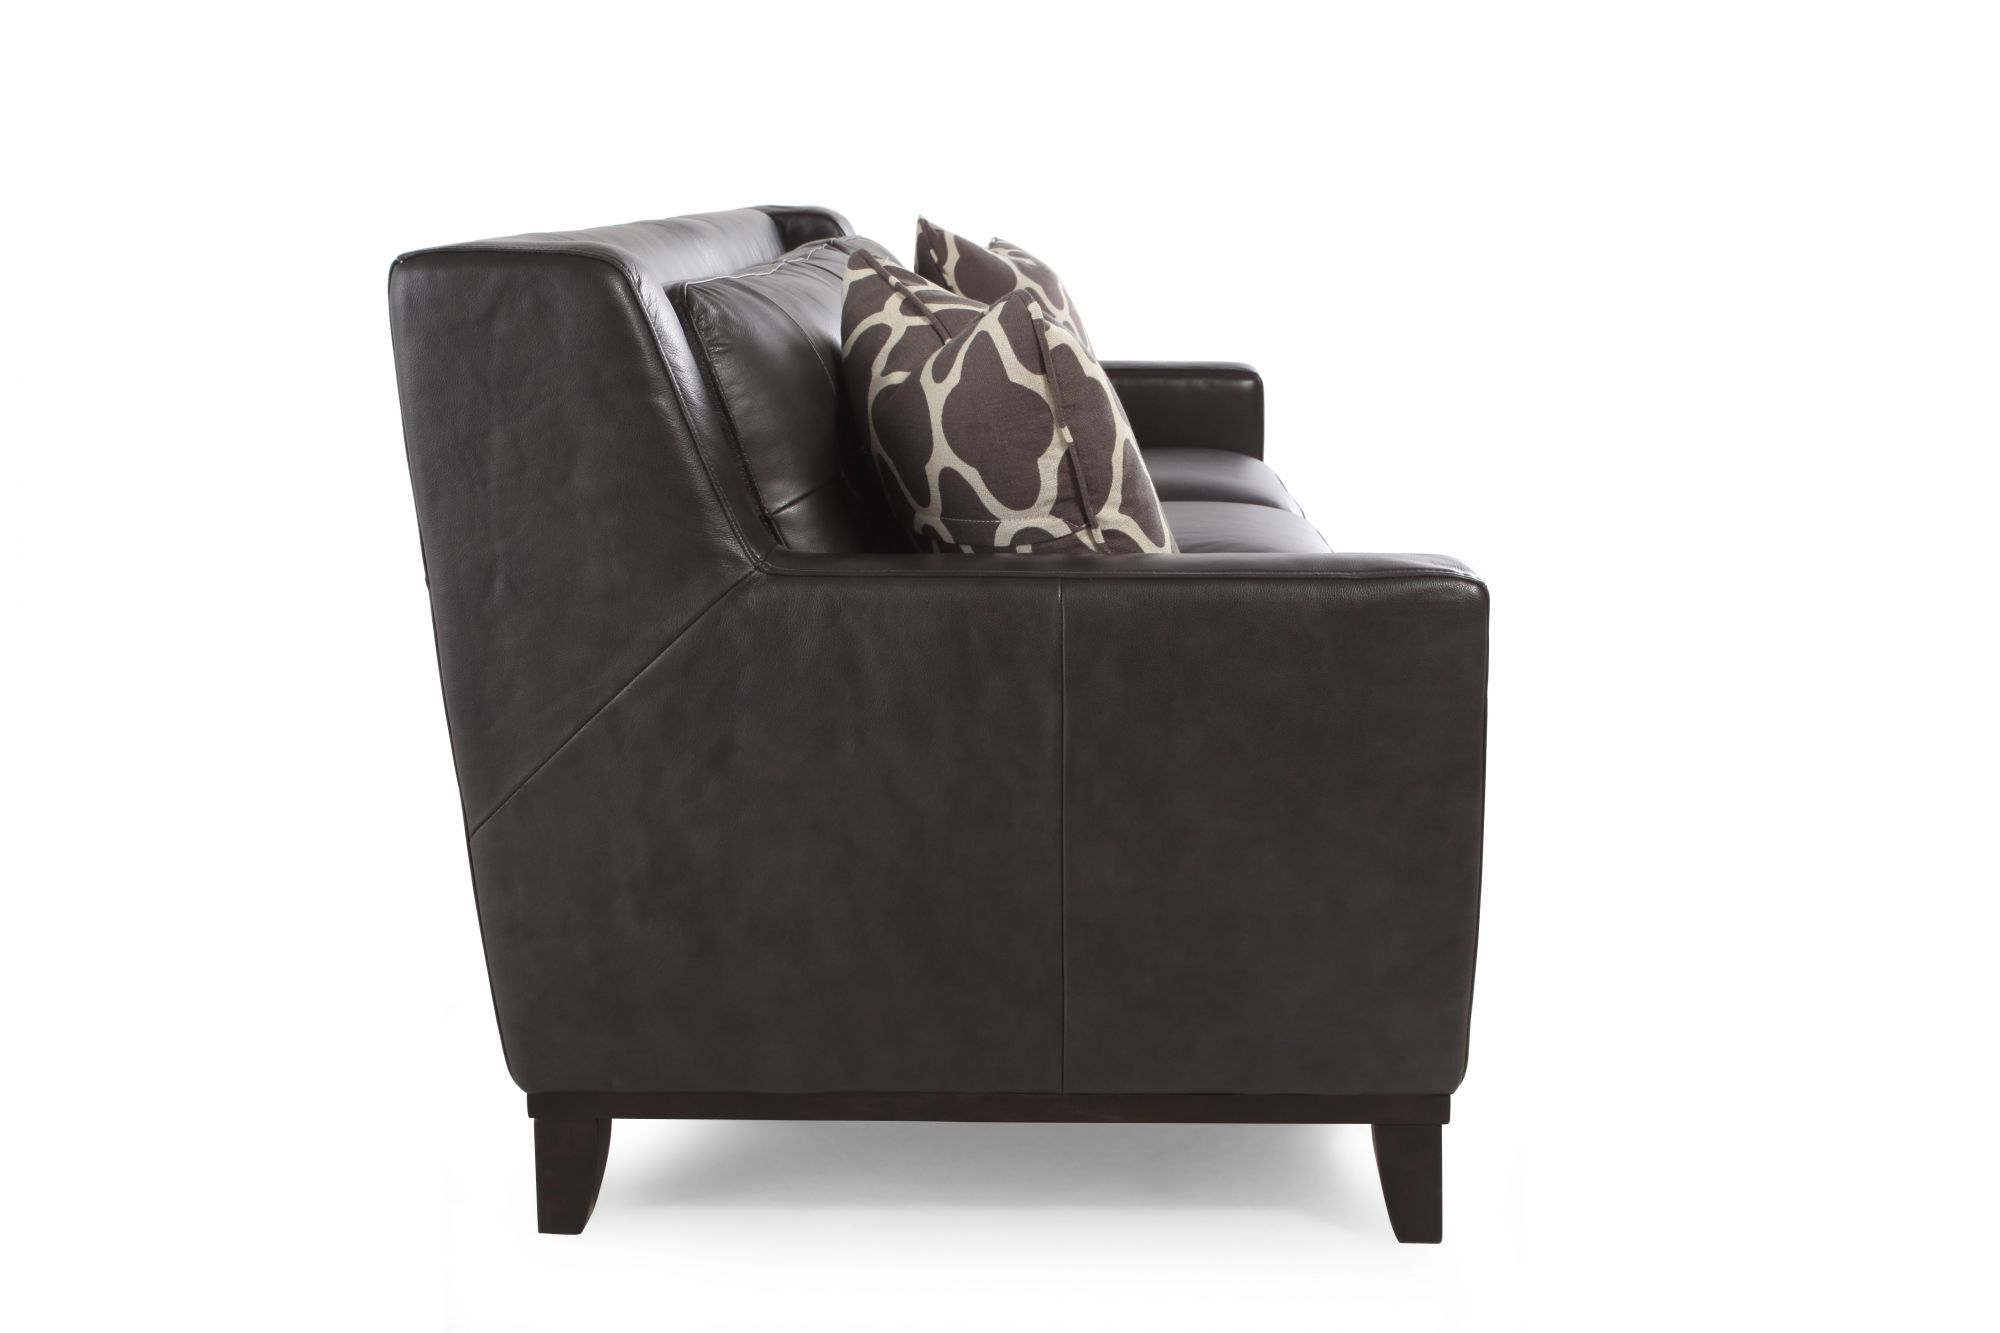 gray leather sofa images black and gold cushions boulevard grey mathis brothers furniture